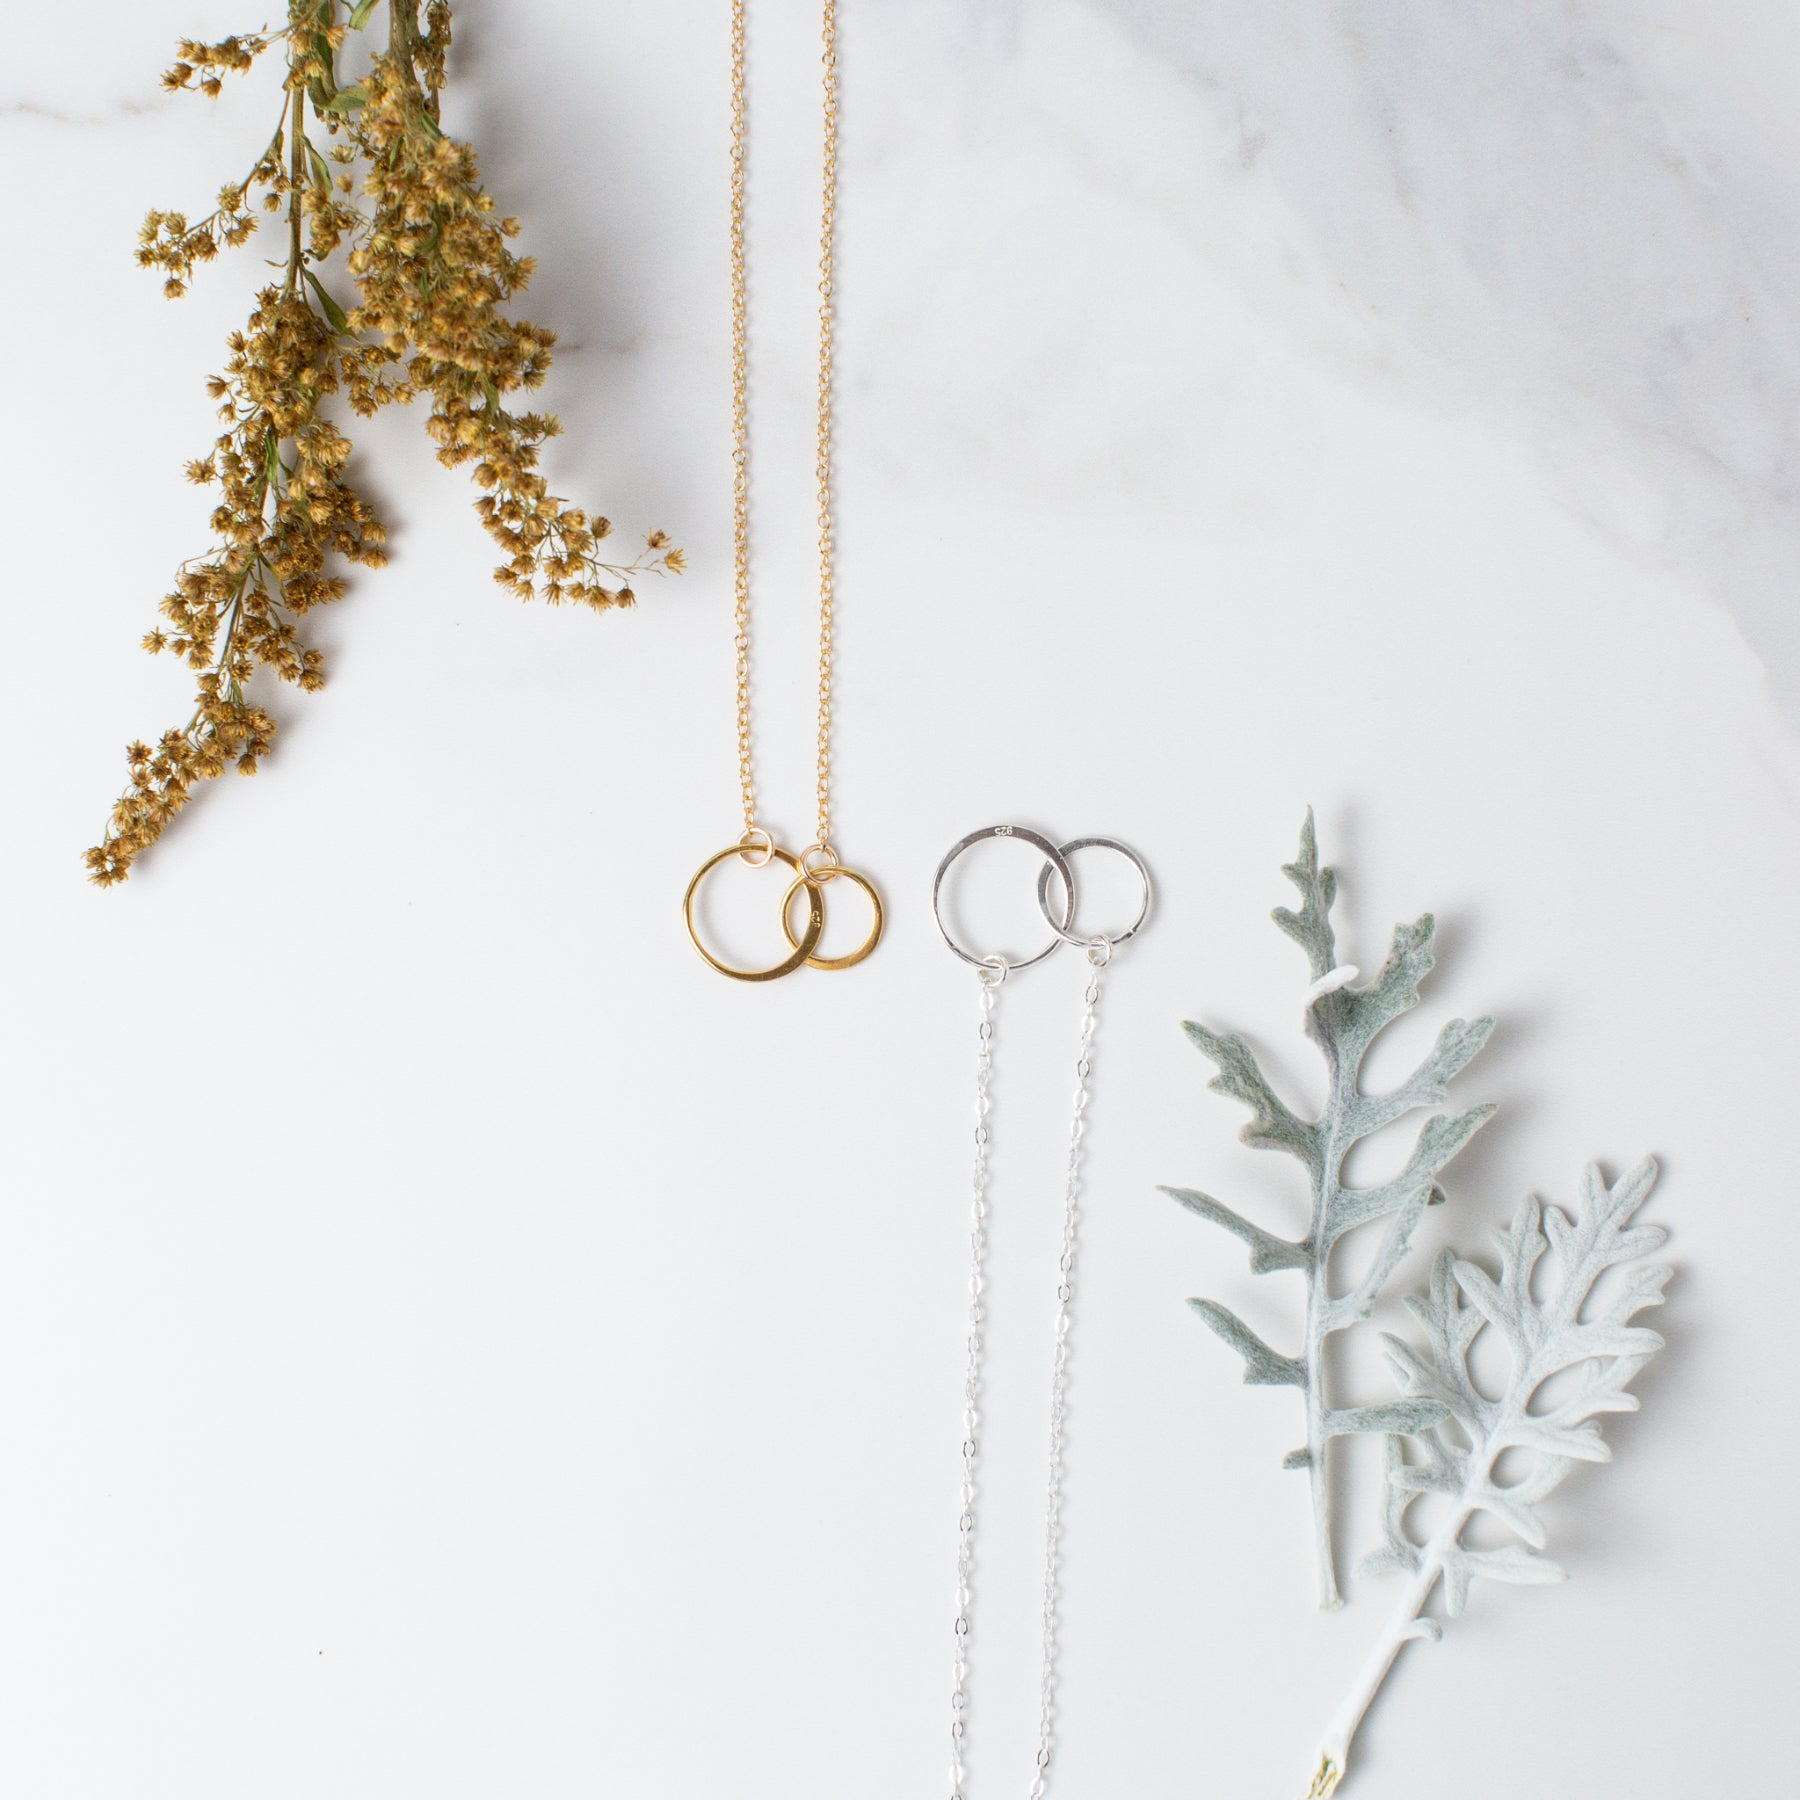 Gold or Silver Linked Circles Necklace 'We Are Connected' Flat Lay with Gold Flowers and White Leaves Photo by Asha Blooms